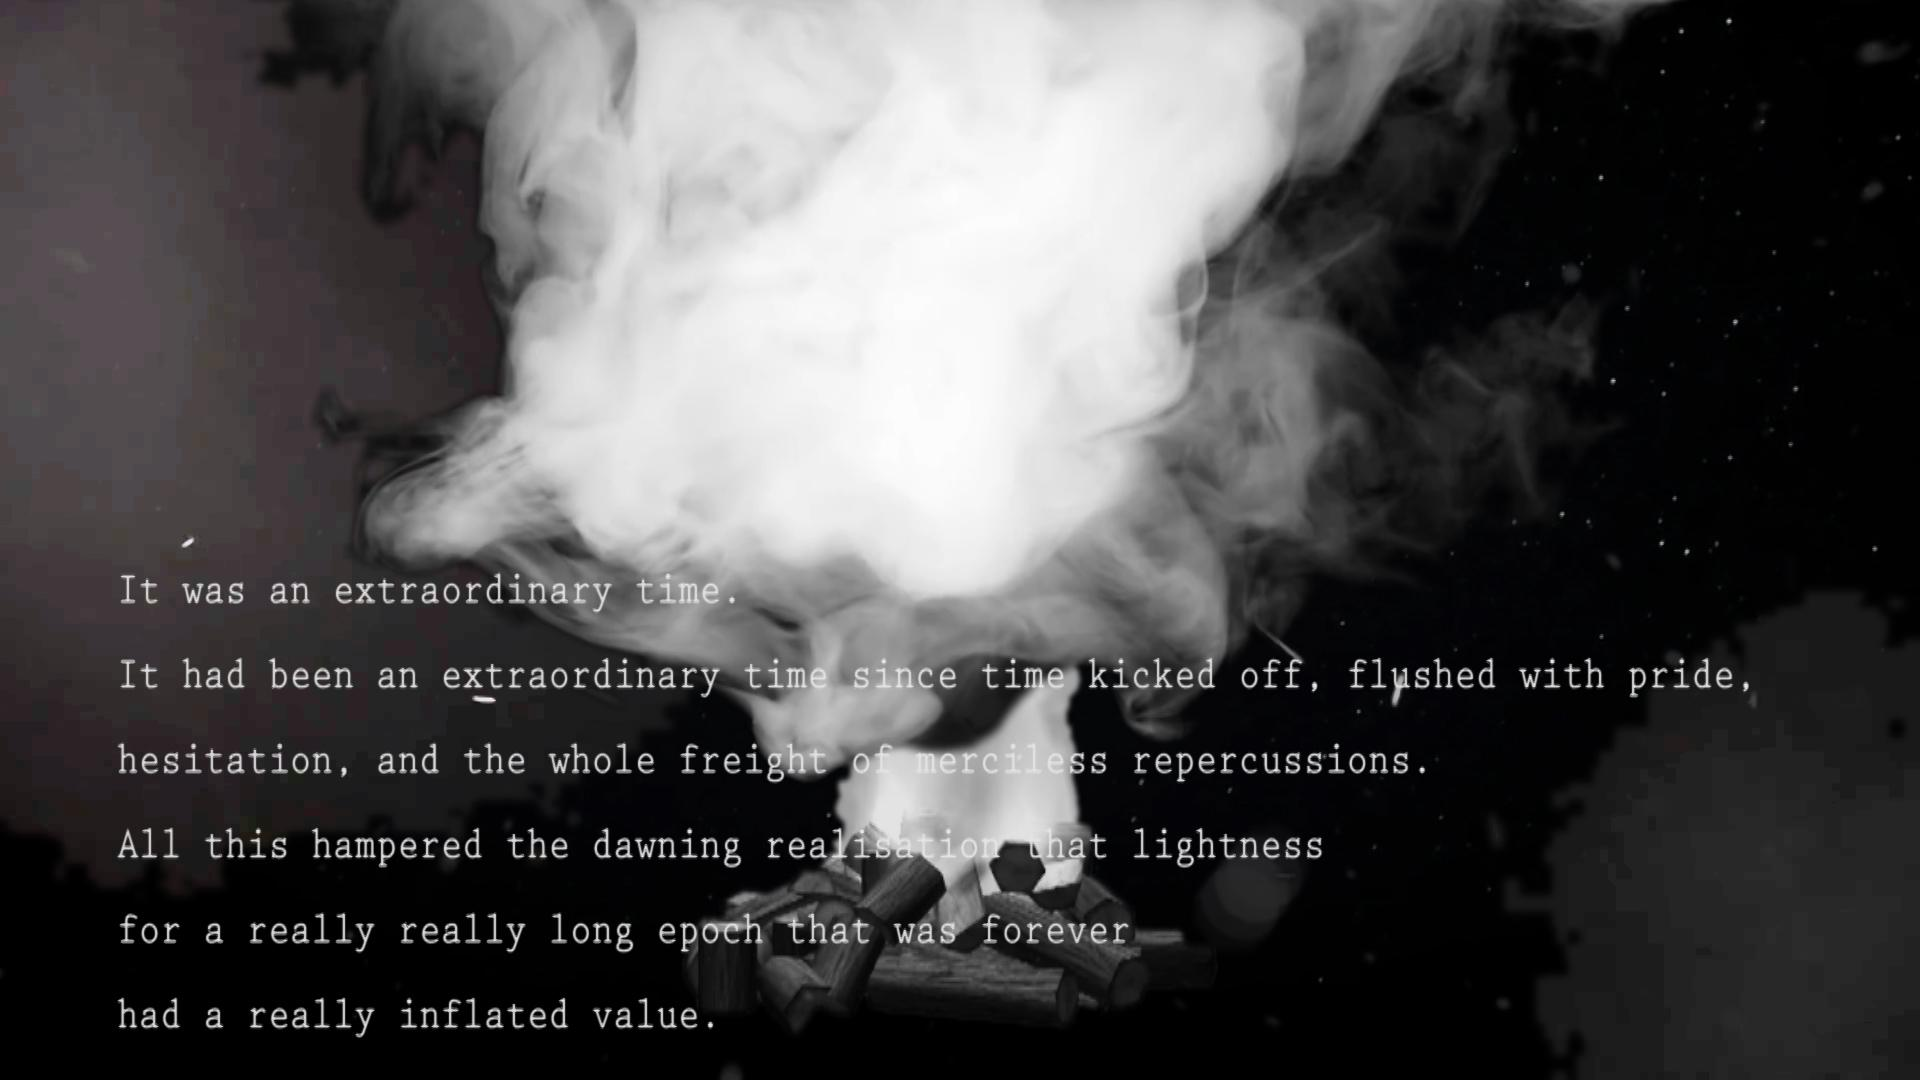 Six lines of white computer text appear over a black-and-white image of a digitally rendered bonfire creating billowing white smoke.